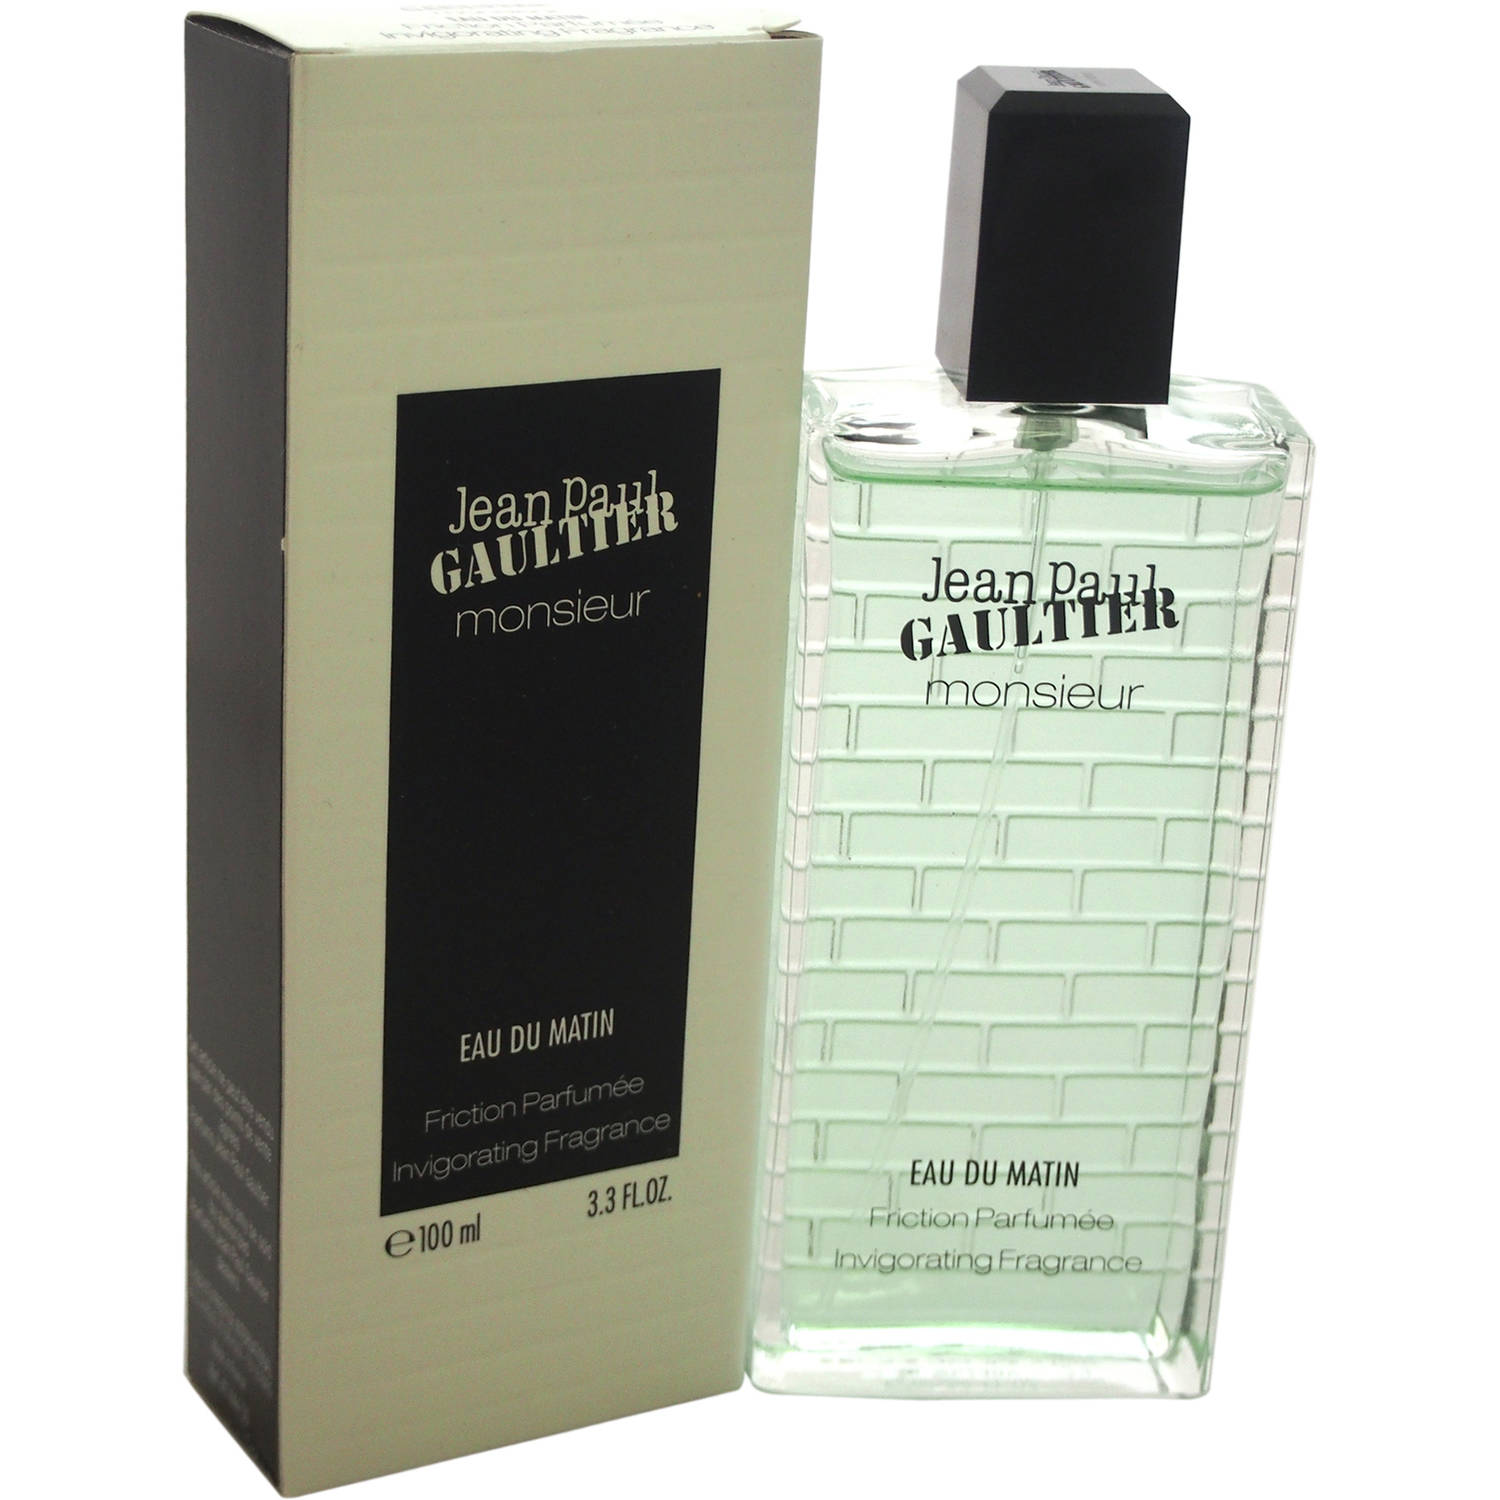 Jean Paul Gaultier Monsieur Eau Du Matin Men's Invigorating Fragrance Spray, 3.3 fl oz